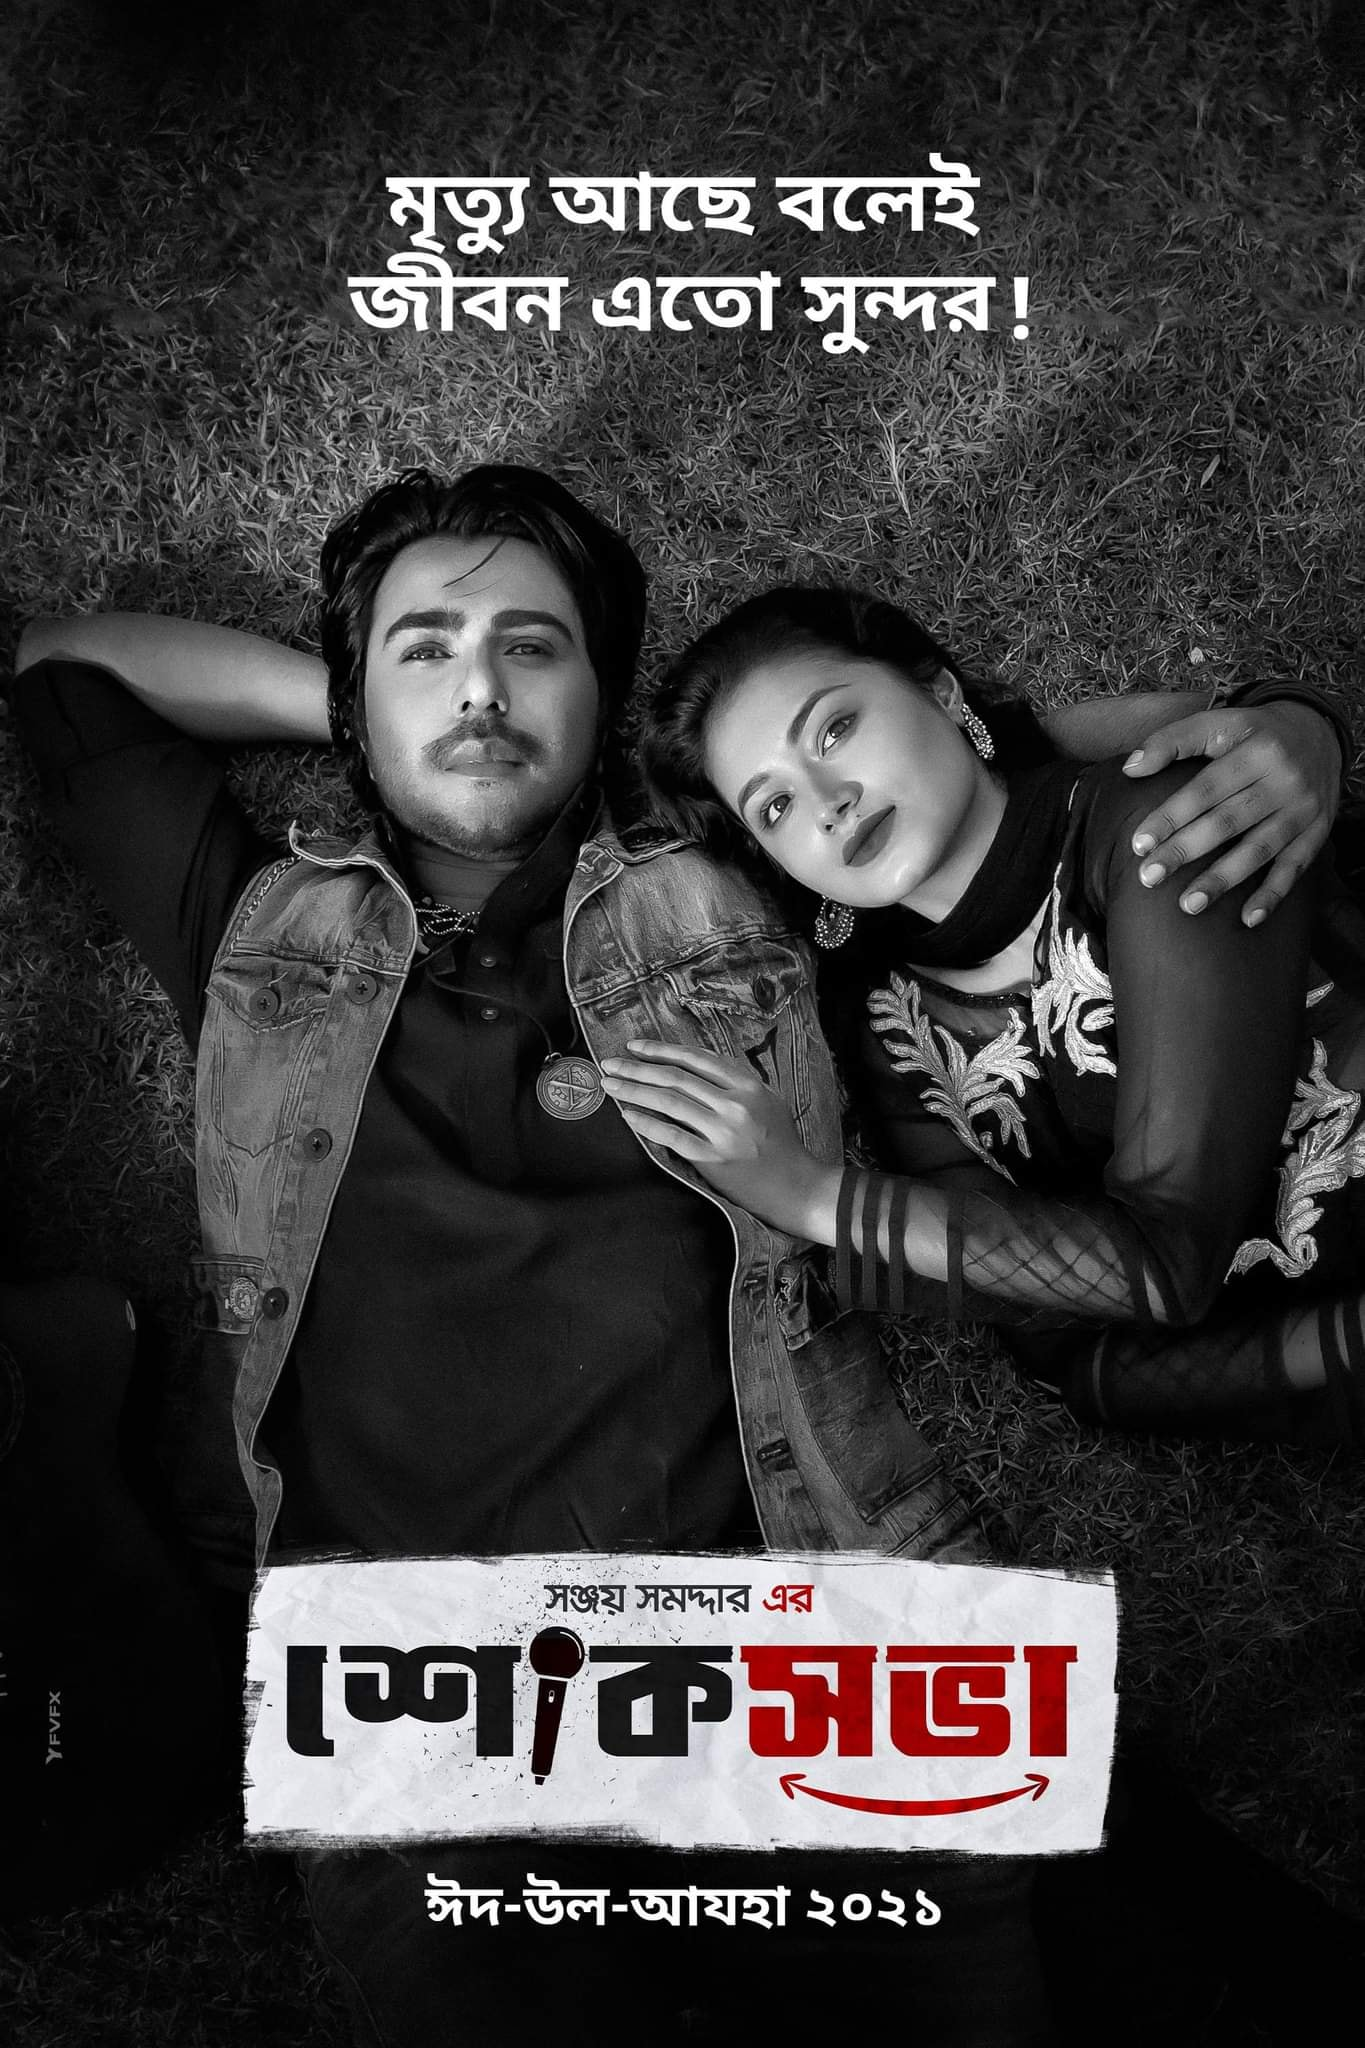 Posters of actor Ziaul Faruq Apurba's upcoming Eid releases